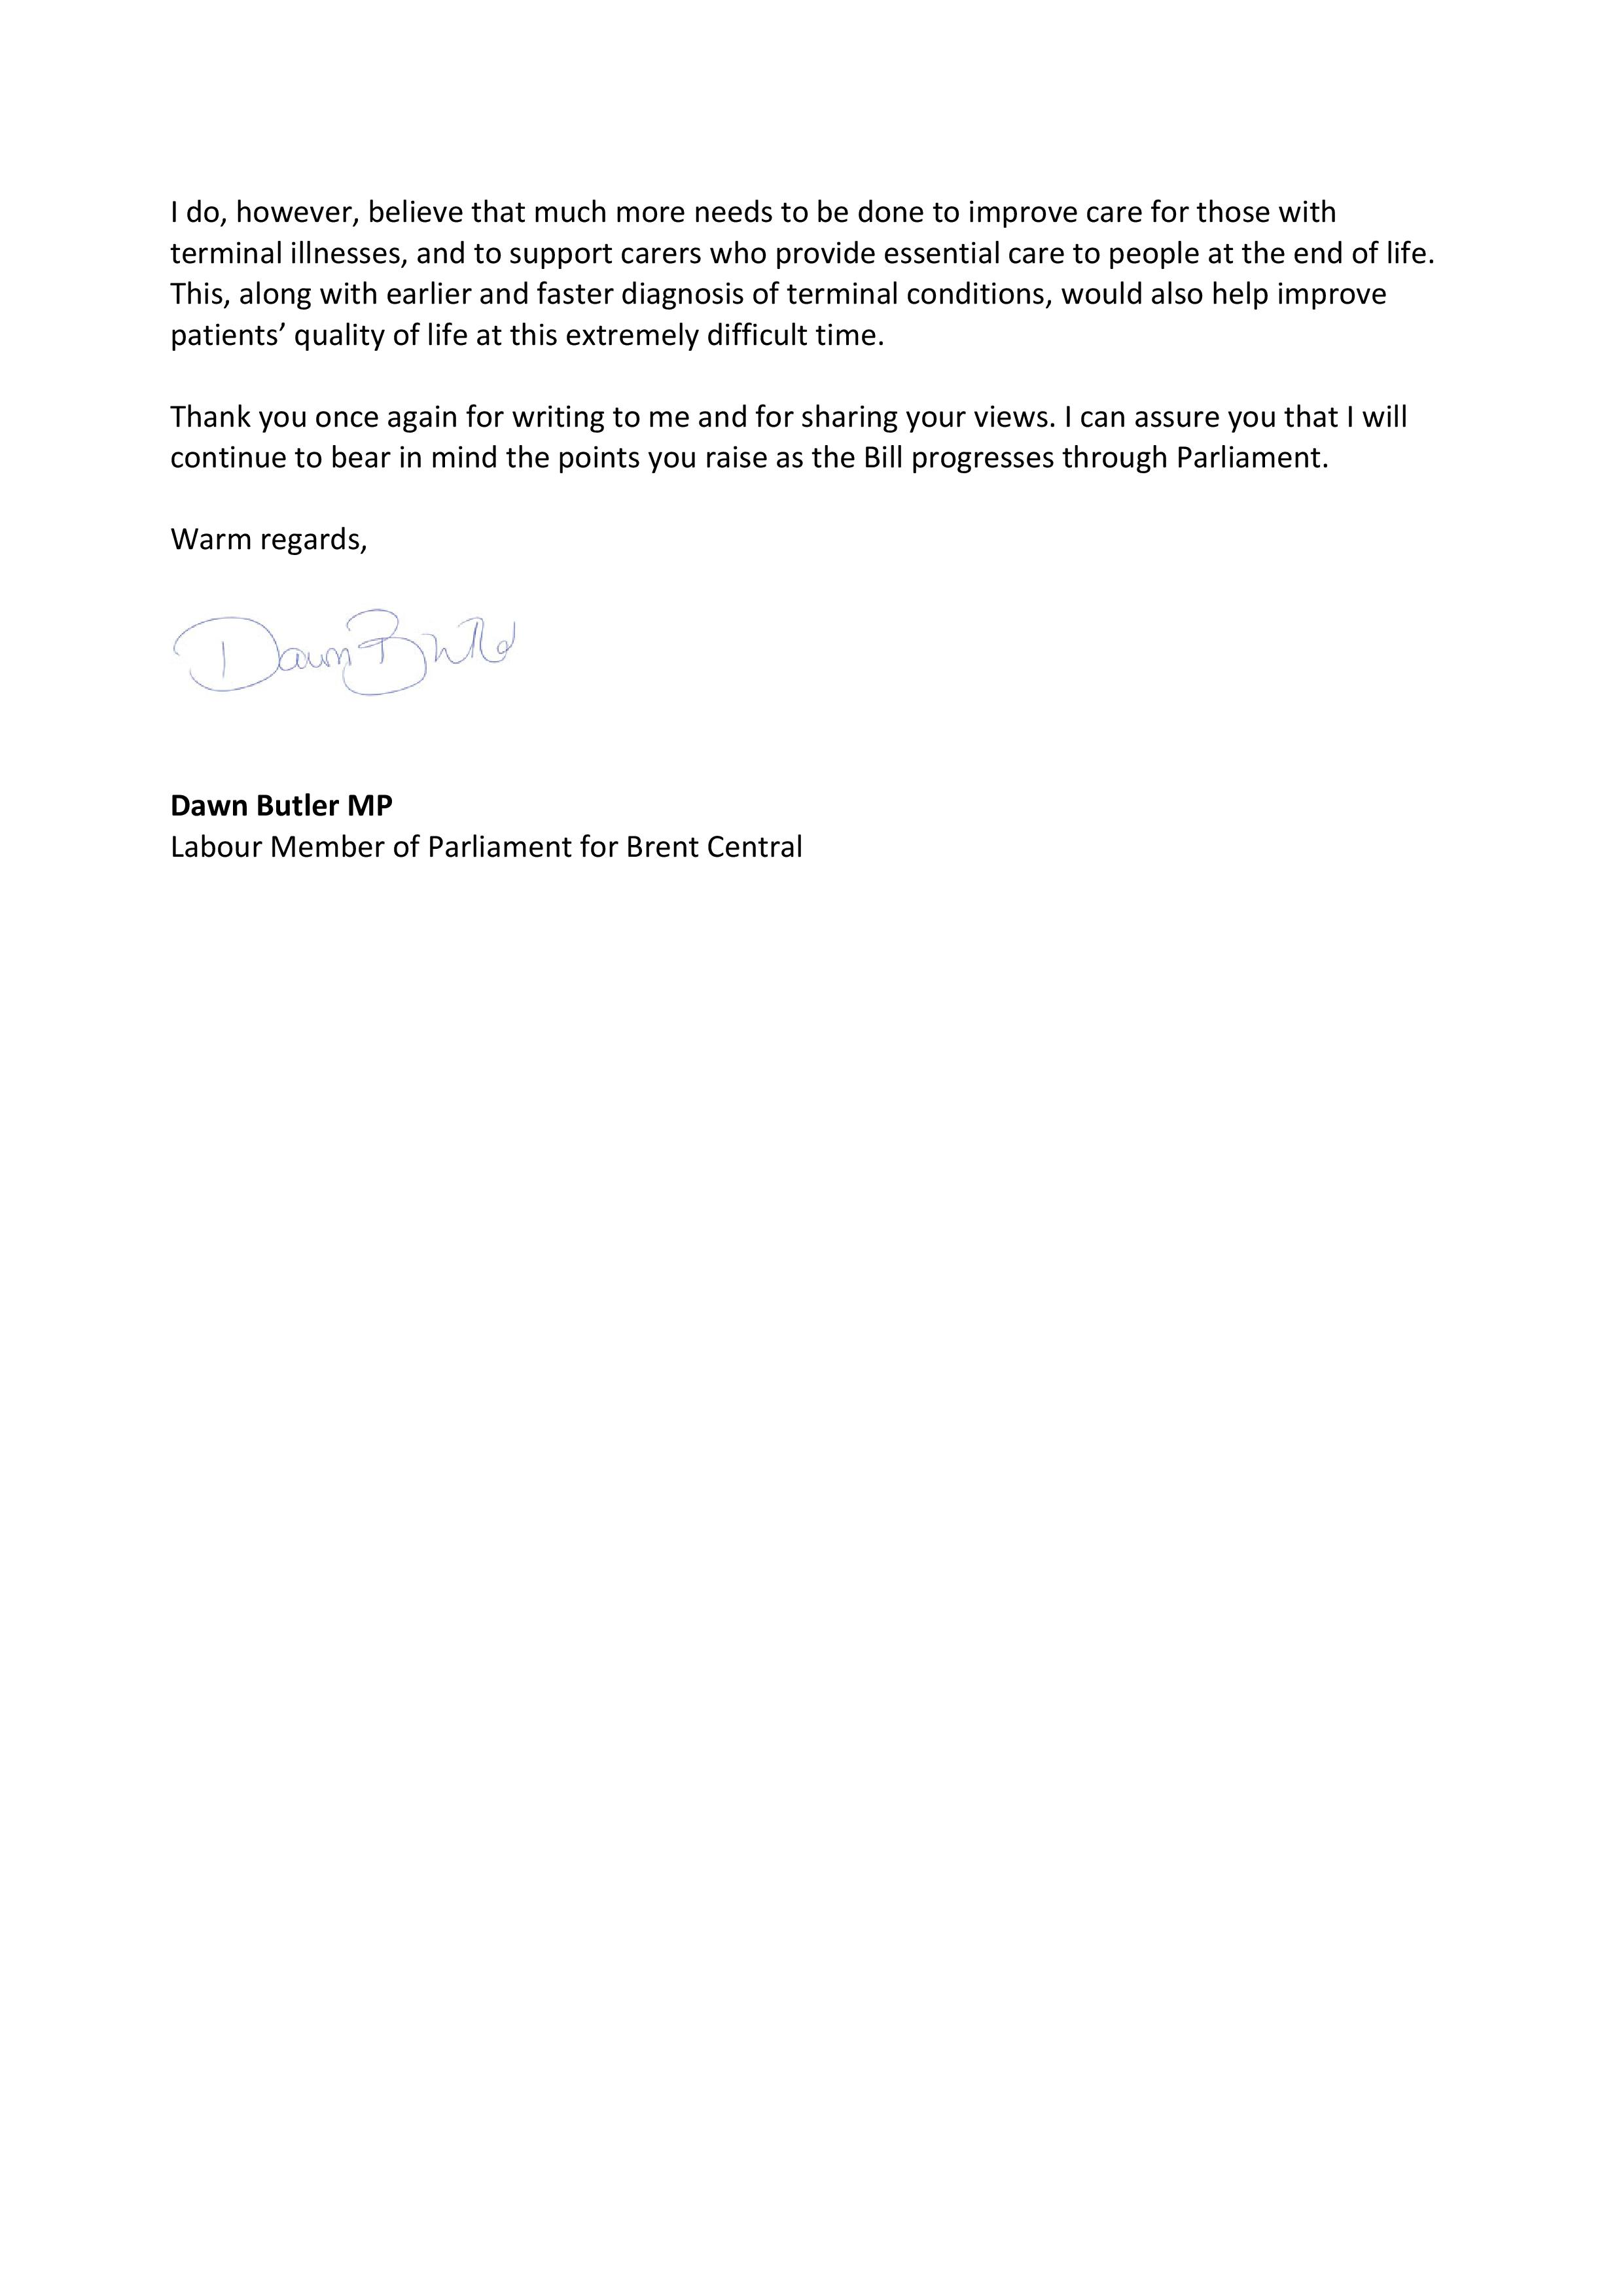 assisted_dying_letter-page-002.jpg